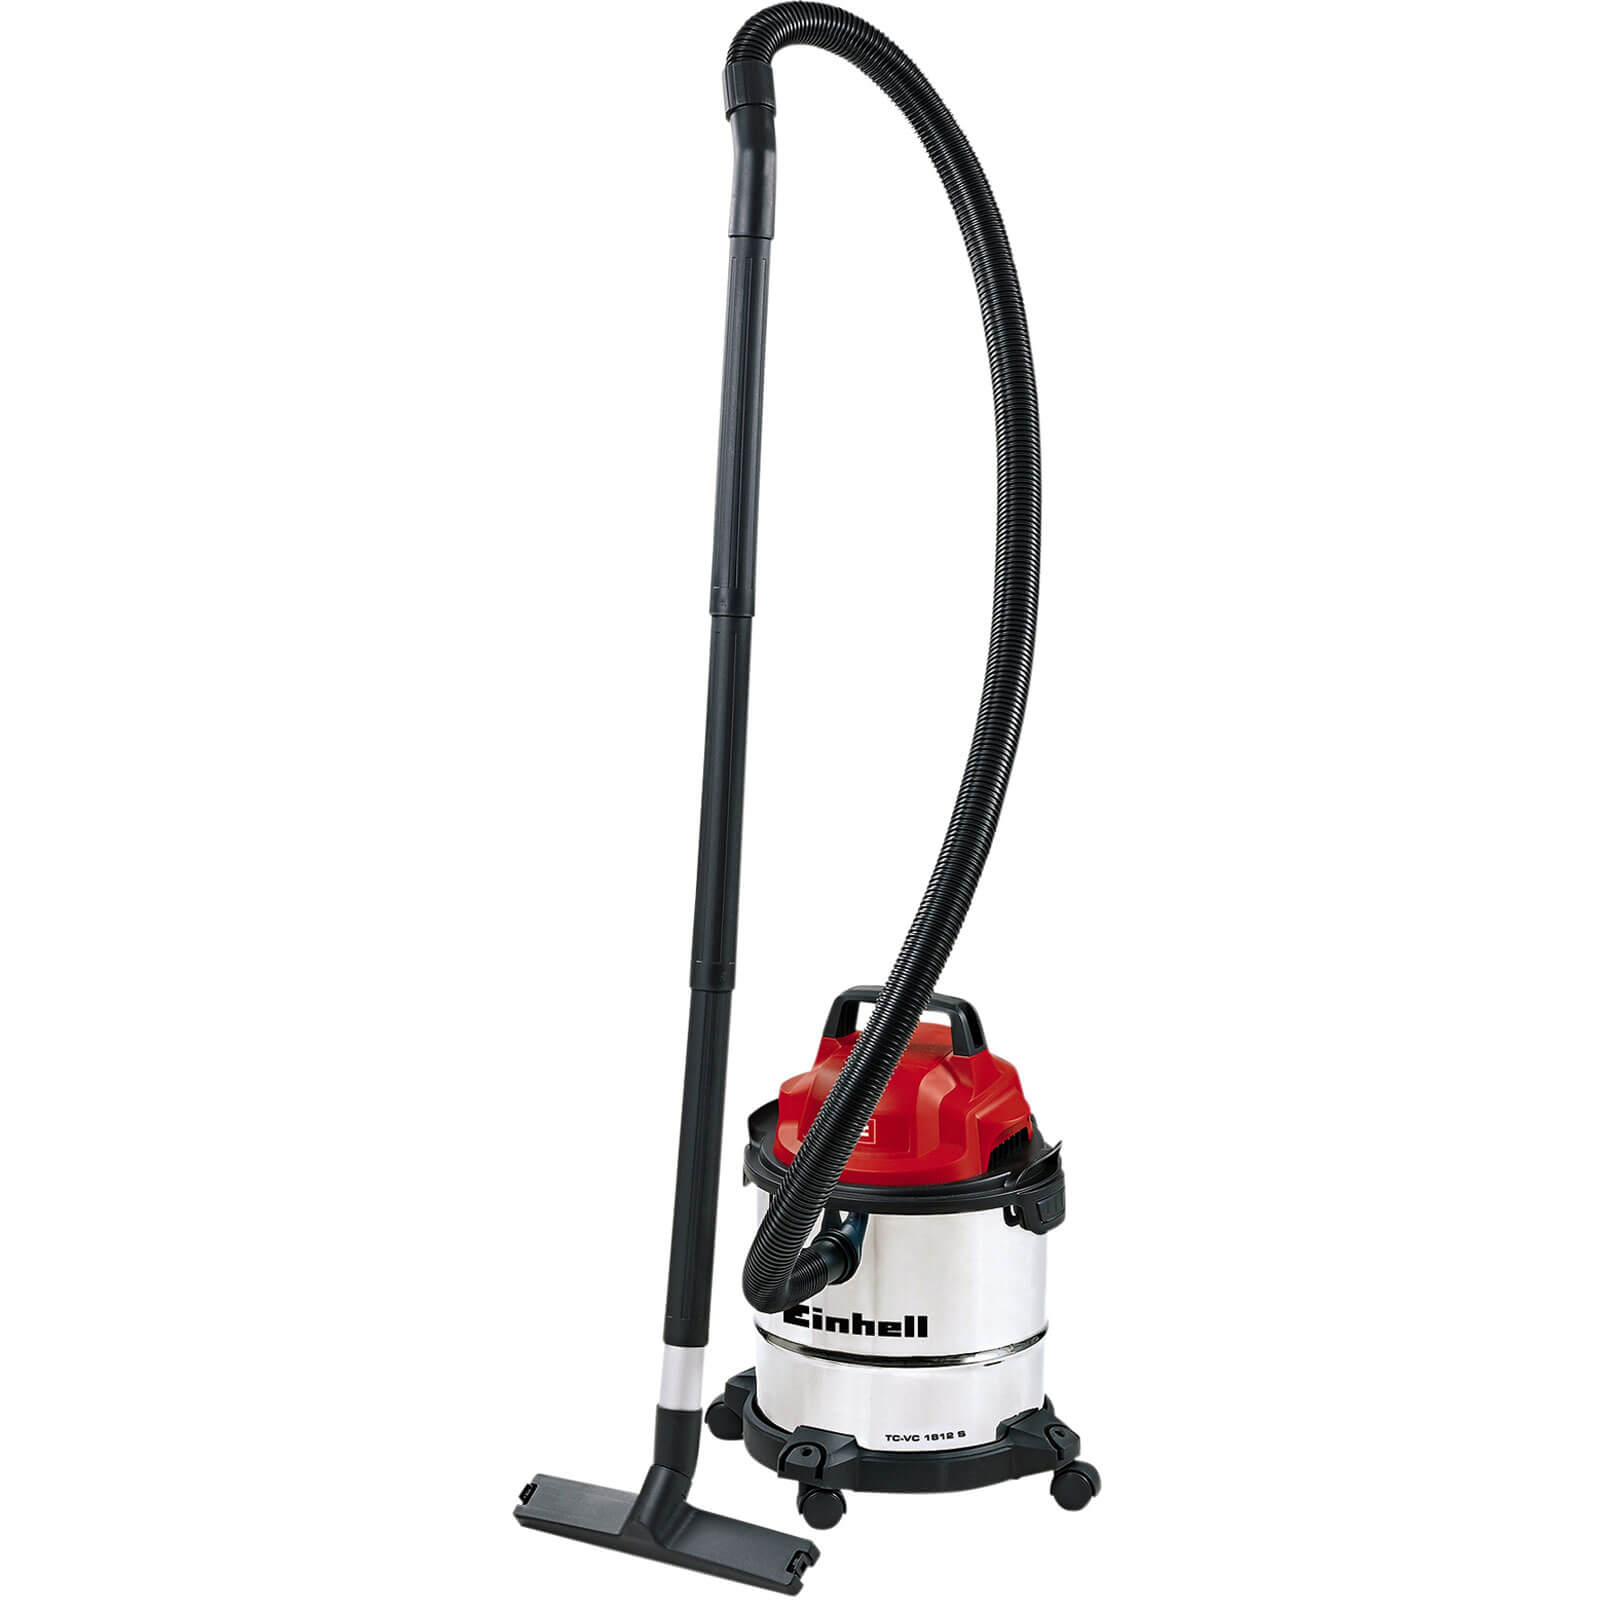 Image of Einhell TC-VC 1812S Wet & Dry Vacuum Cleaner 1250w 240v